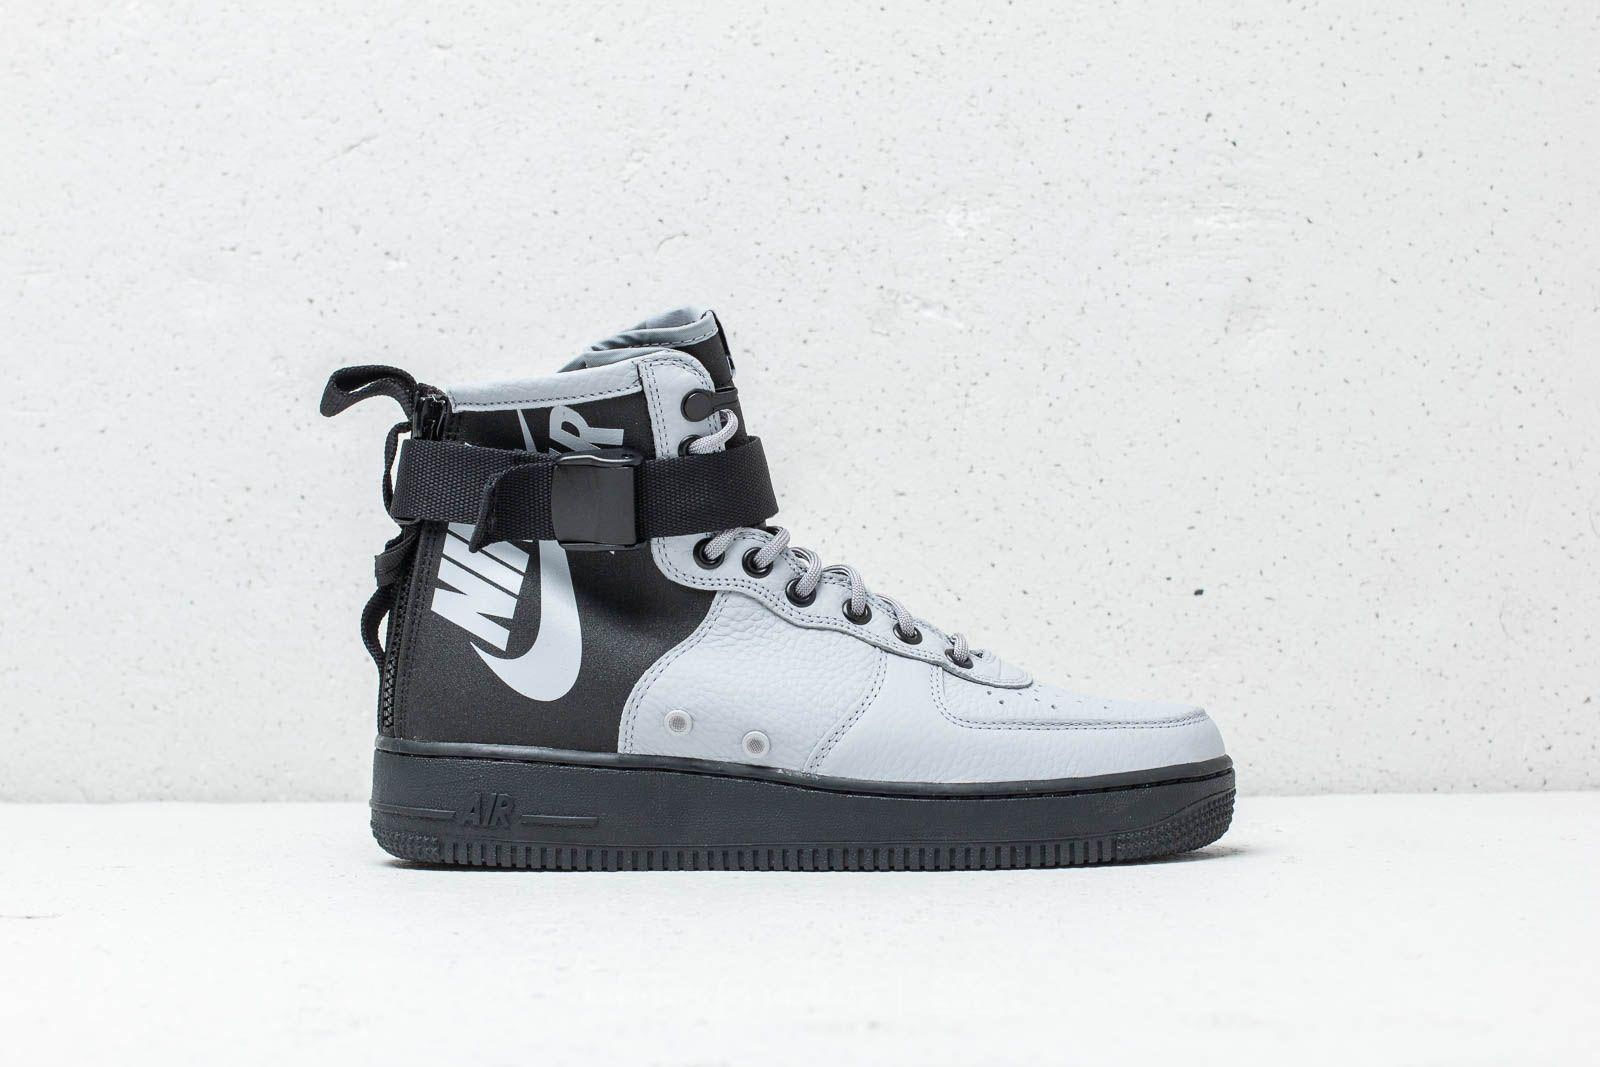 Lyst - Nike Sf Air Force 1 Mid Wolf Grey  Wolf Grey-black in Gray ... e6705ace0bf2